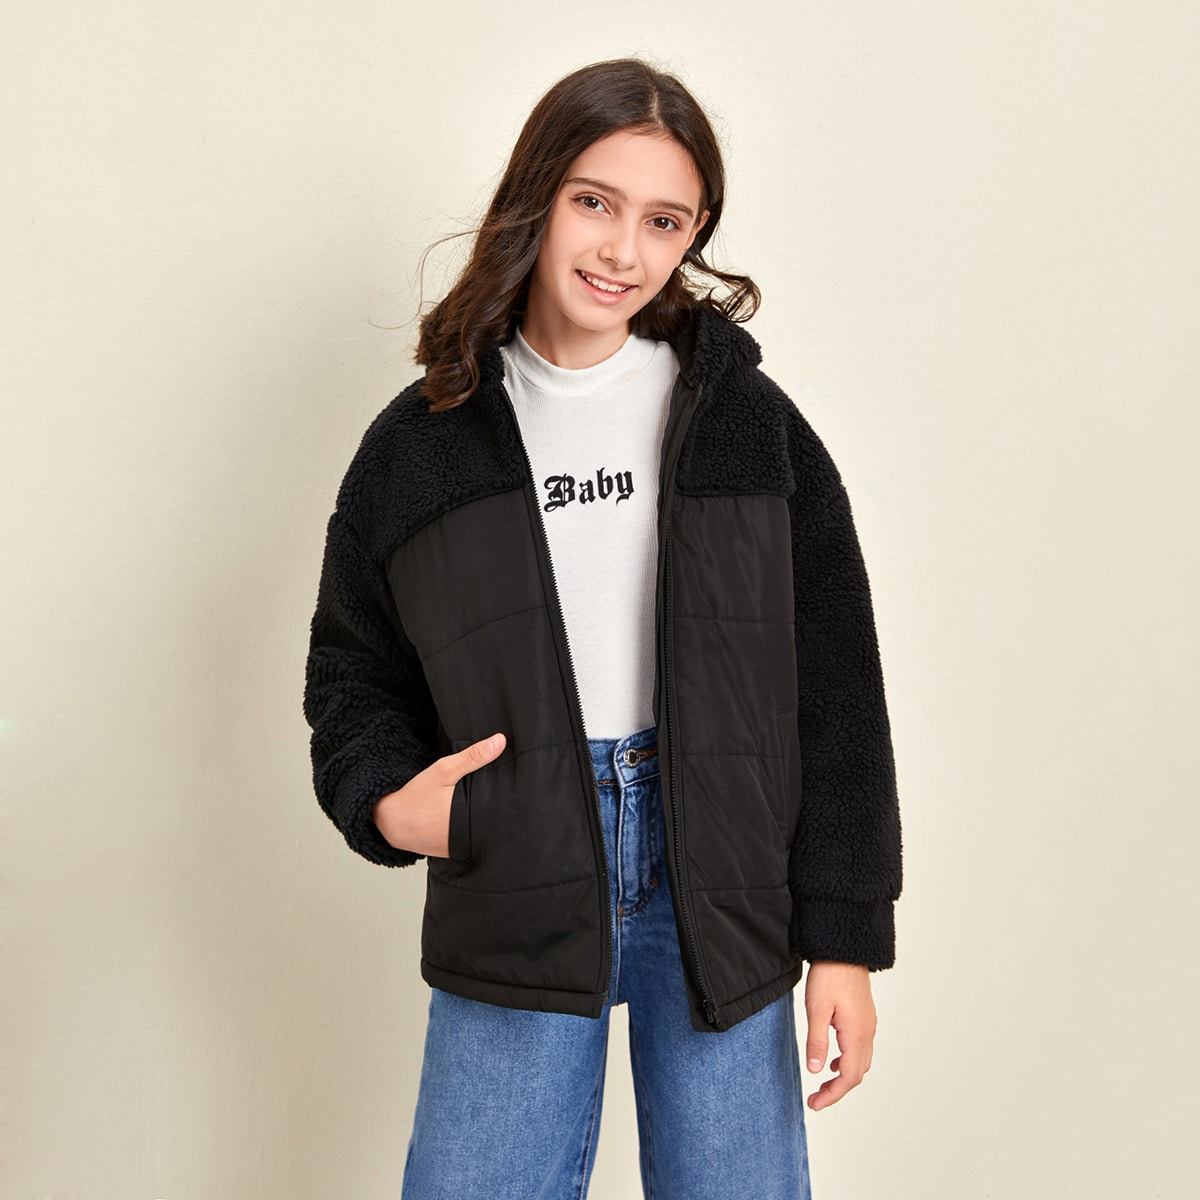 Girls Faux Shearling Panel Zip Up Hooded Puffer Jacket